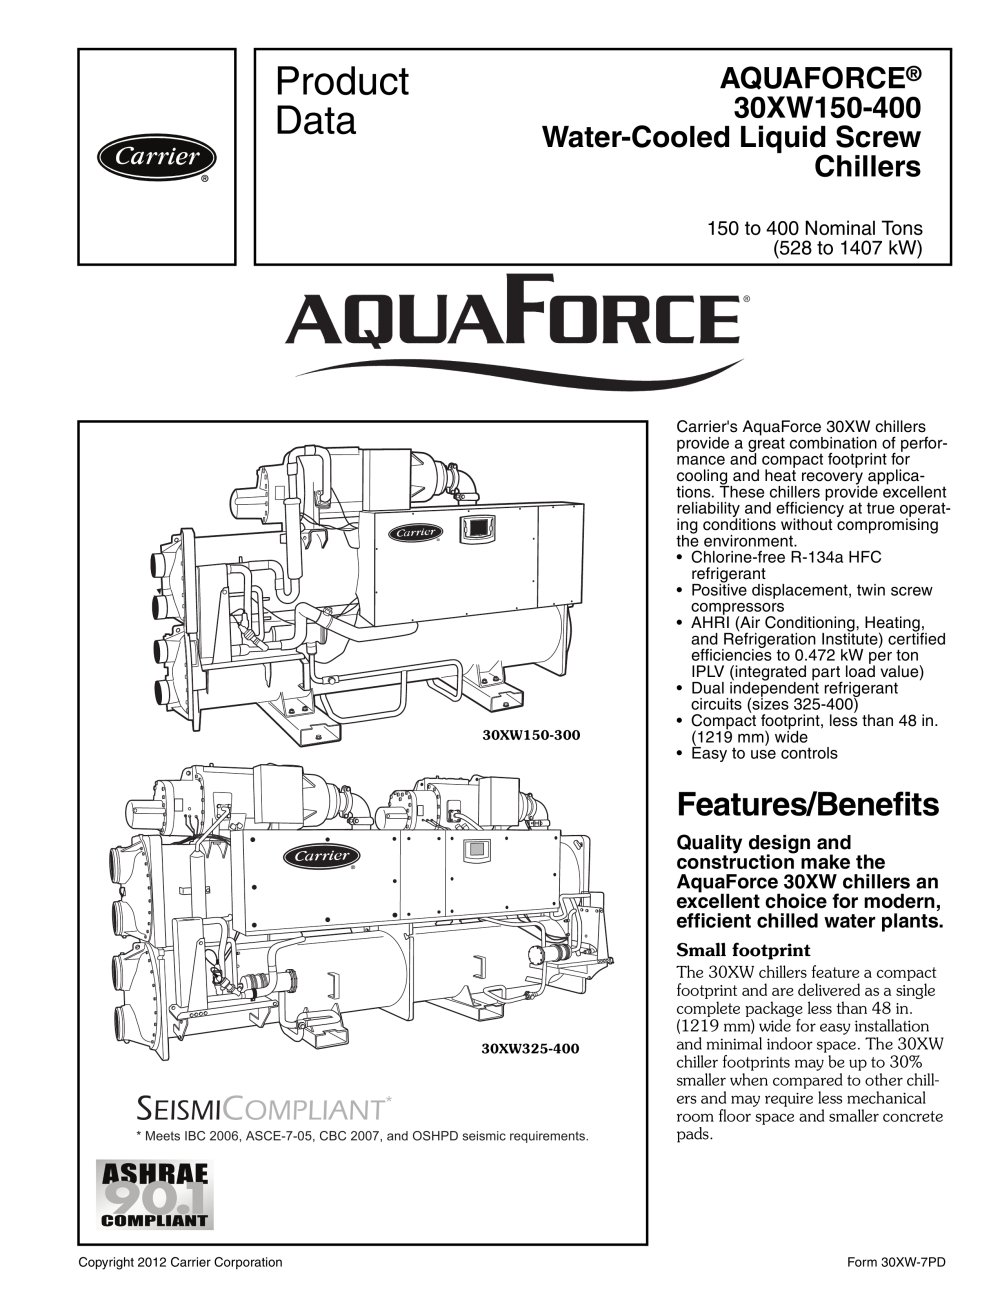 30xa carrier chiller wiring diagram wiring diagrams readingrat aquaforce 30xw150 400 carrier commercial pdf catalogue wiring diagram cheapraybanclubmaster Images